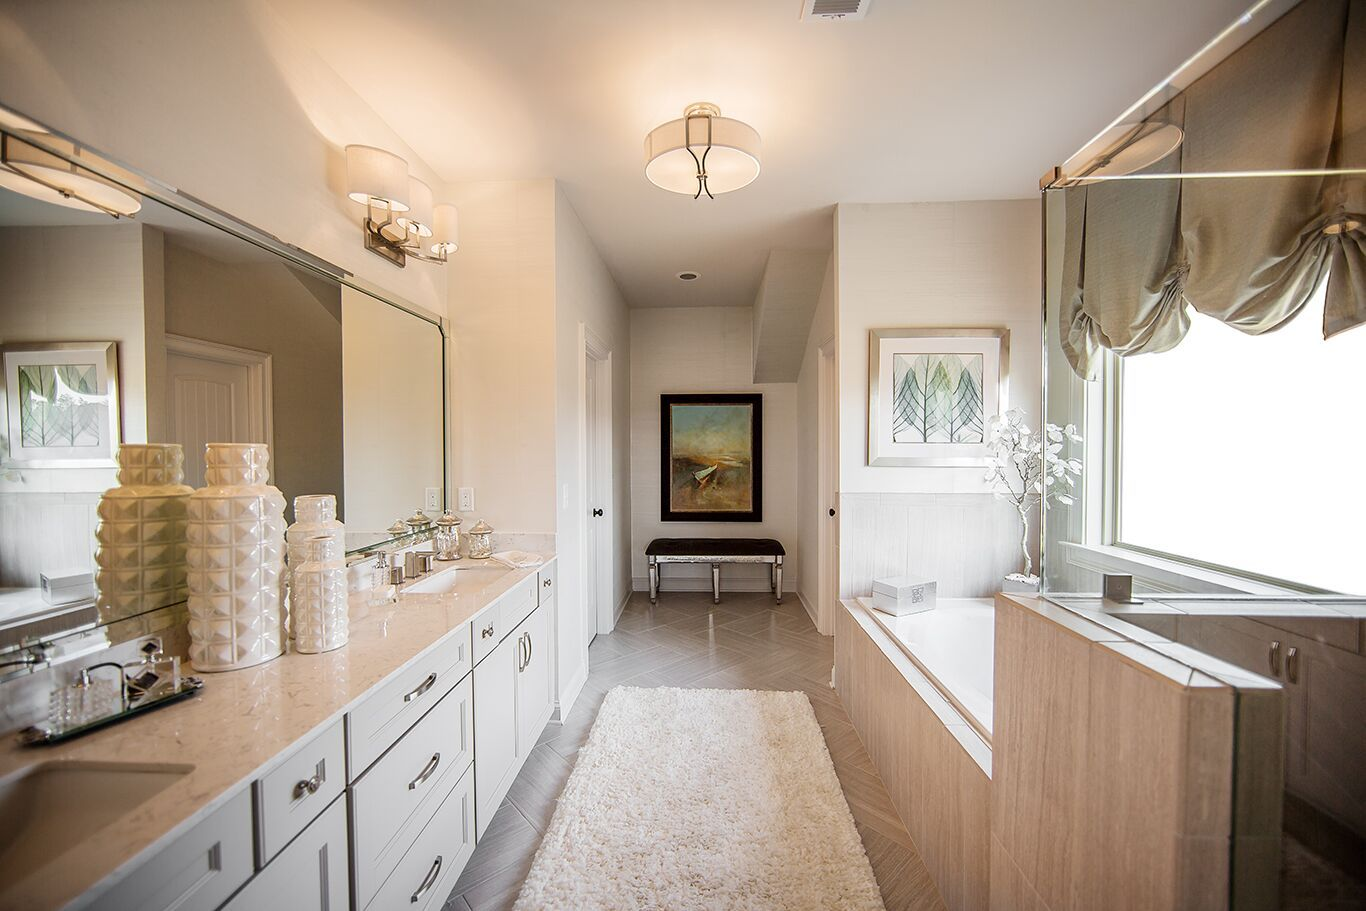 Single Family for Active at Primrose - Collingswood 176 Sierra Circle Woodstock, Georgia 30188 United States